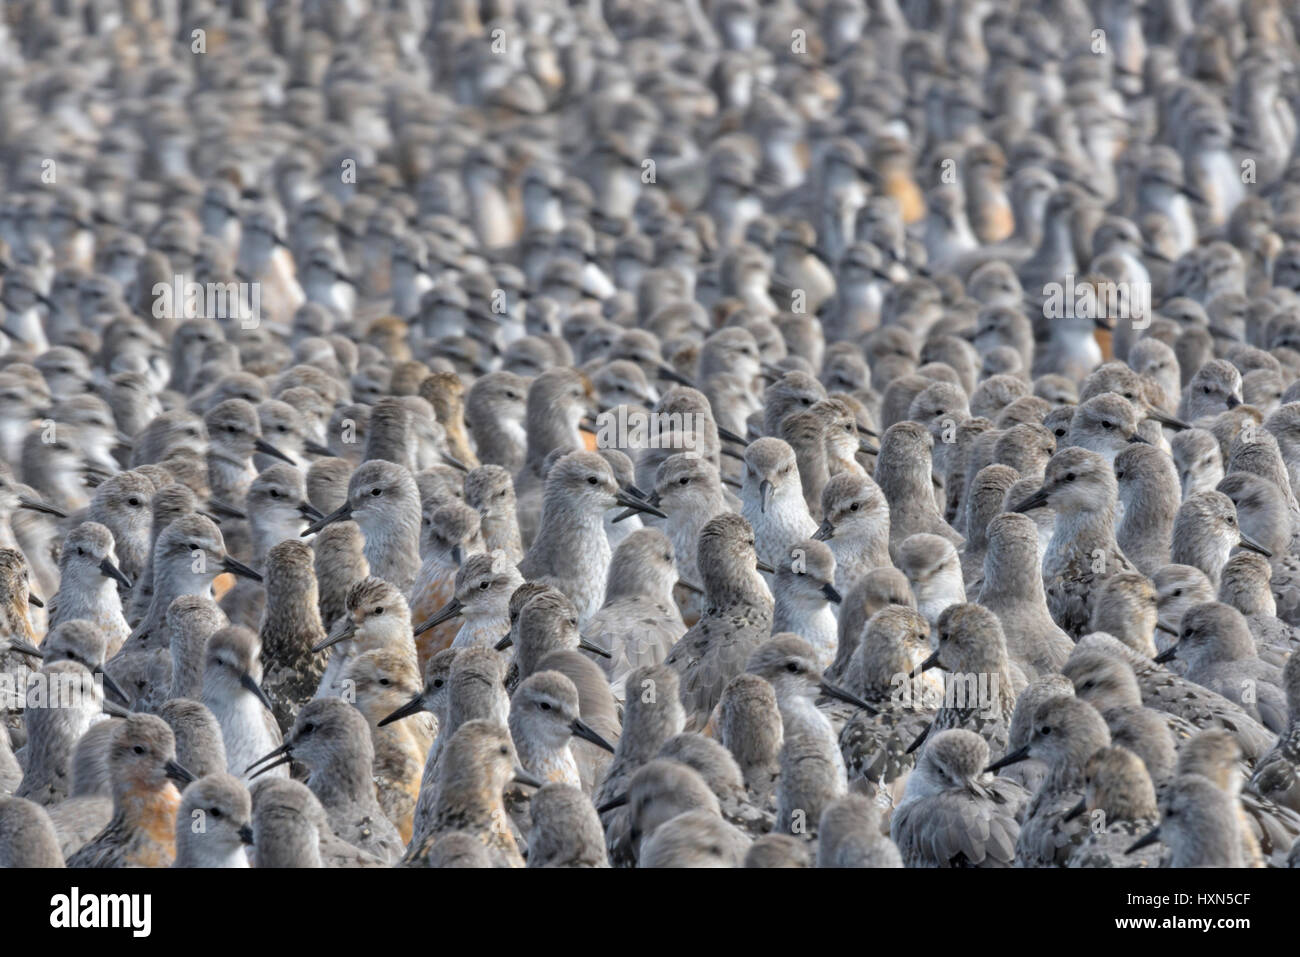 Flock of red knot (Calidris canutus) at high tide roost. Snettisham RSPB reserve, Norfolk, England. September. Stock Photo